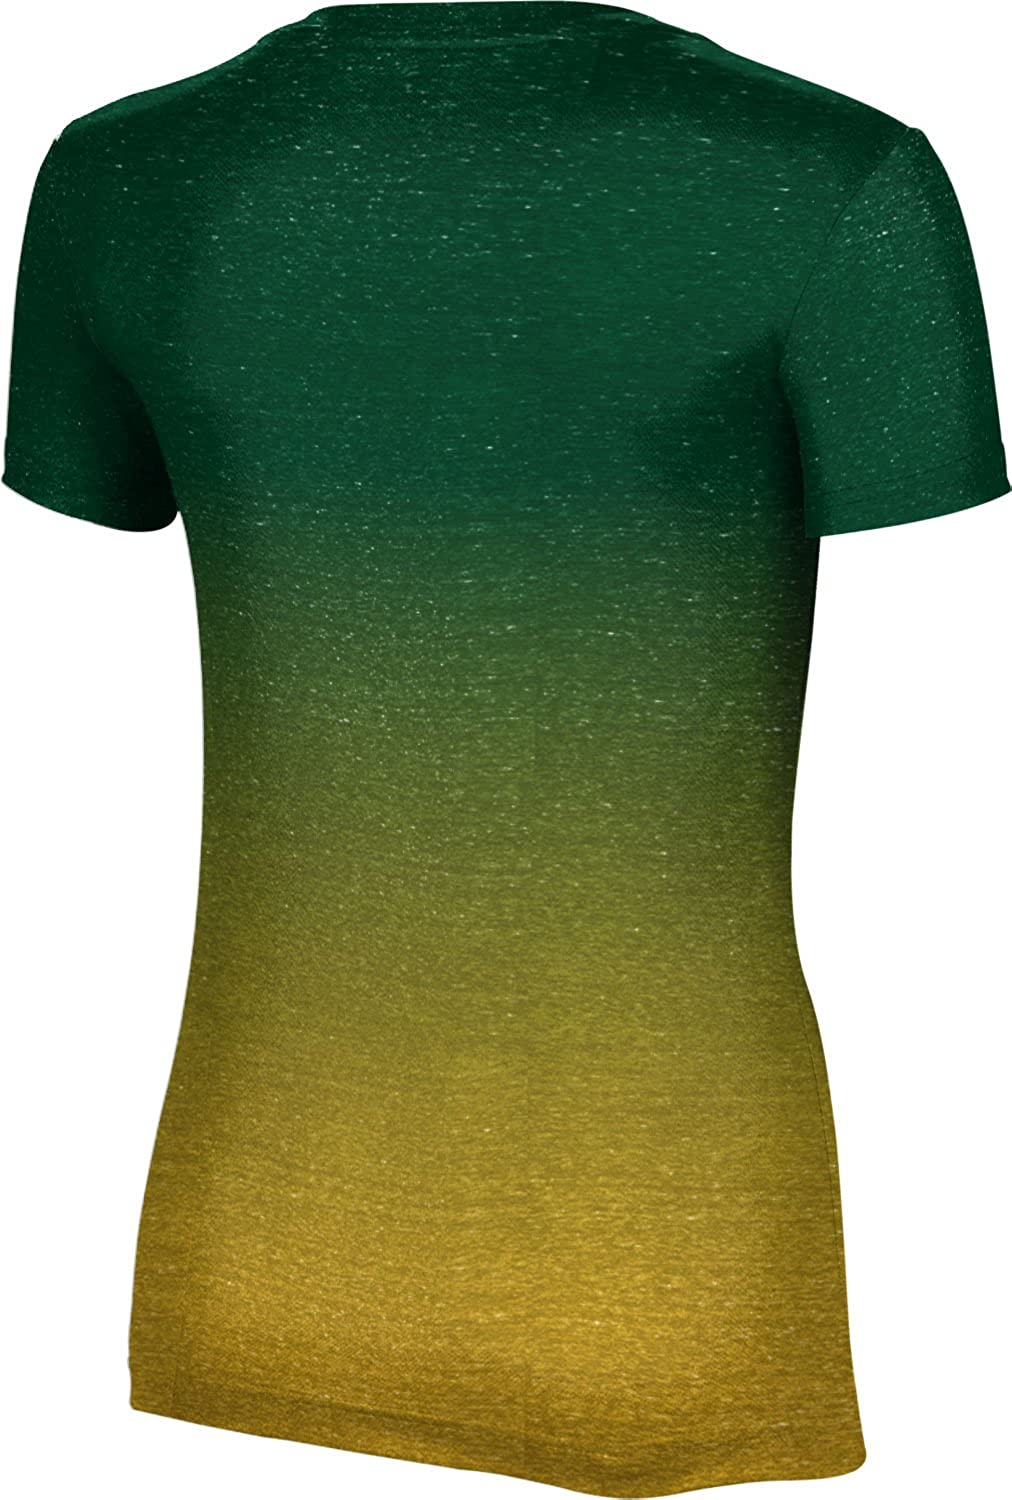 ProSphere University of Vermont Girls Performance T-Shirt Ombre